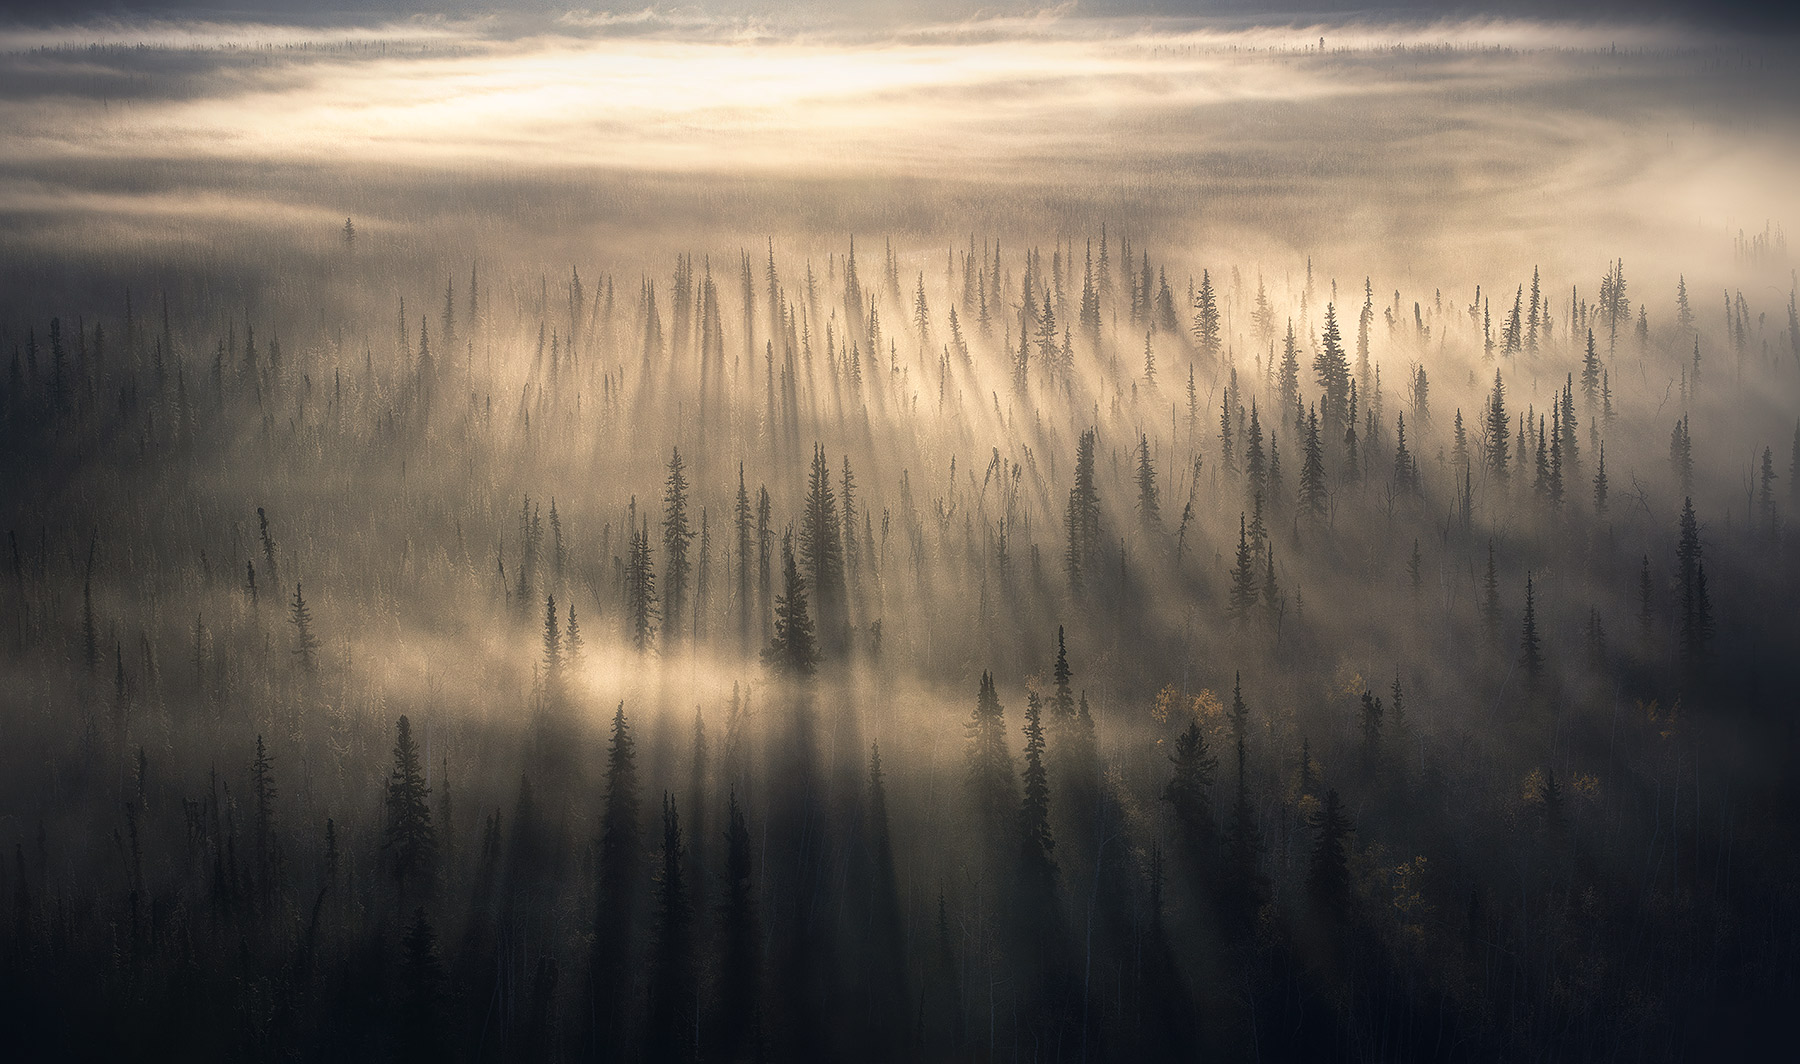 Yukon, boreal, beams, sunbeam, fog beam, fog, photo